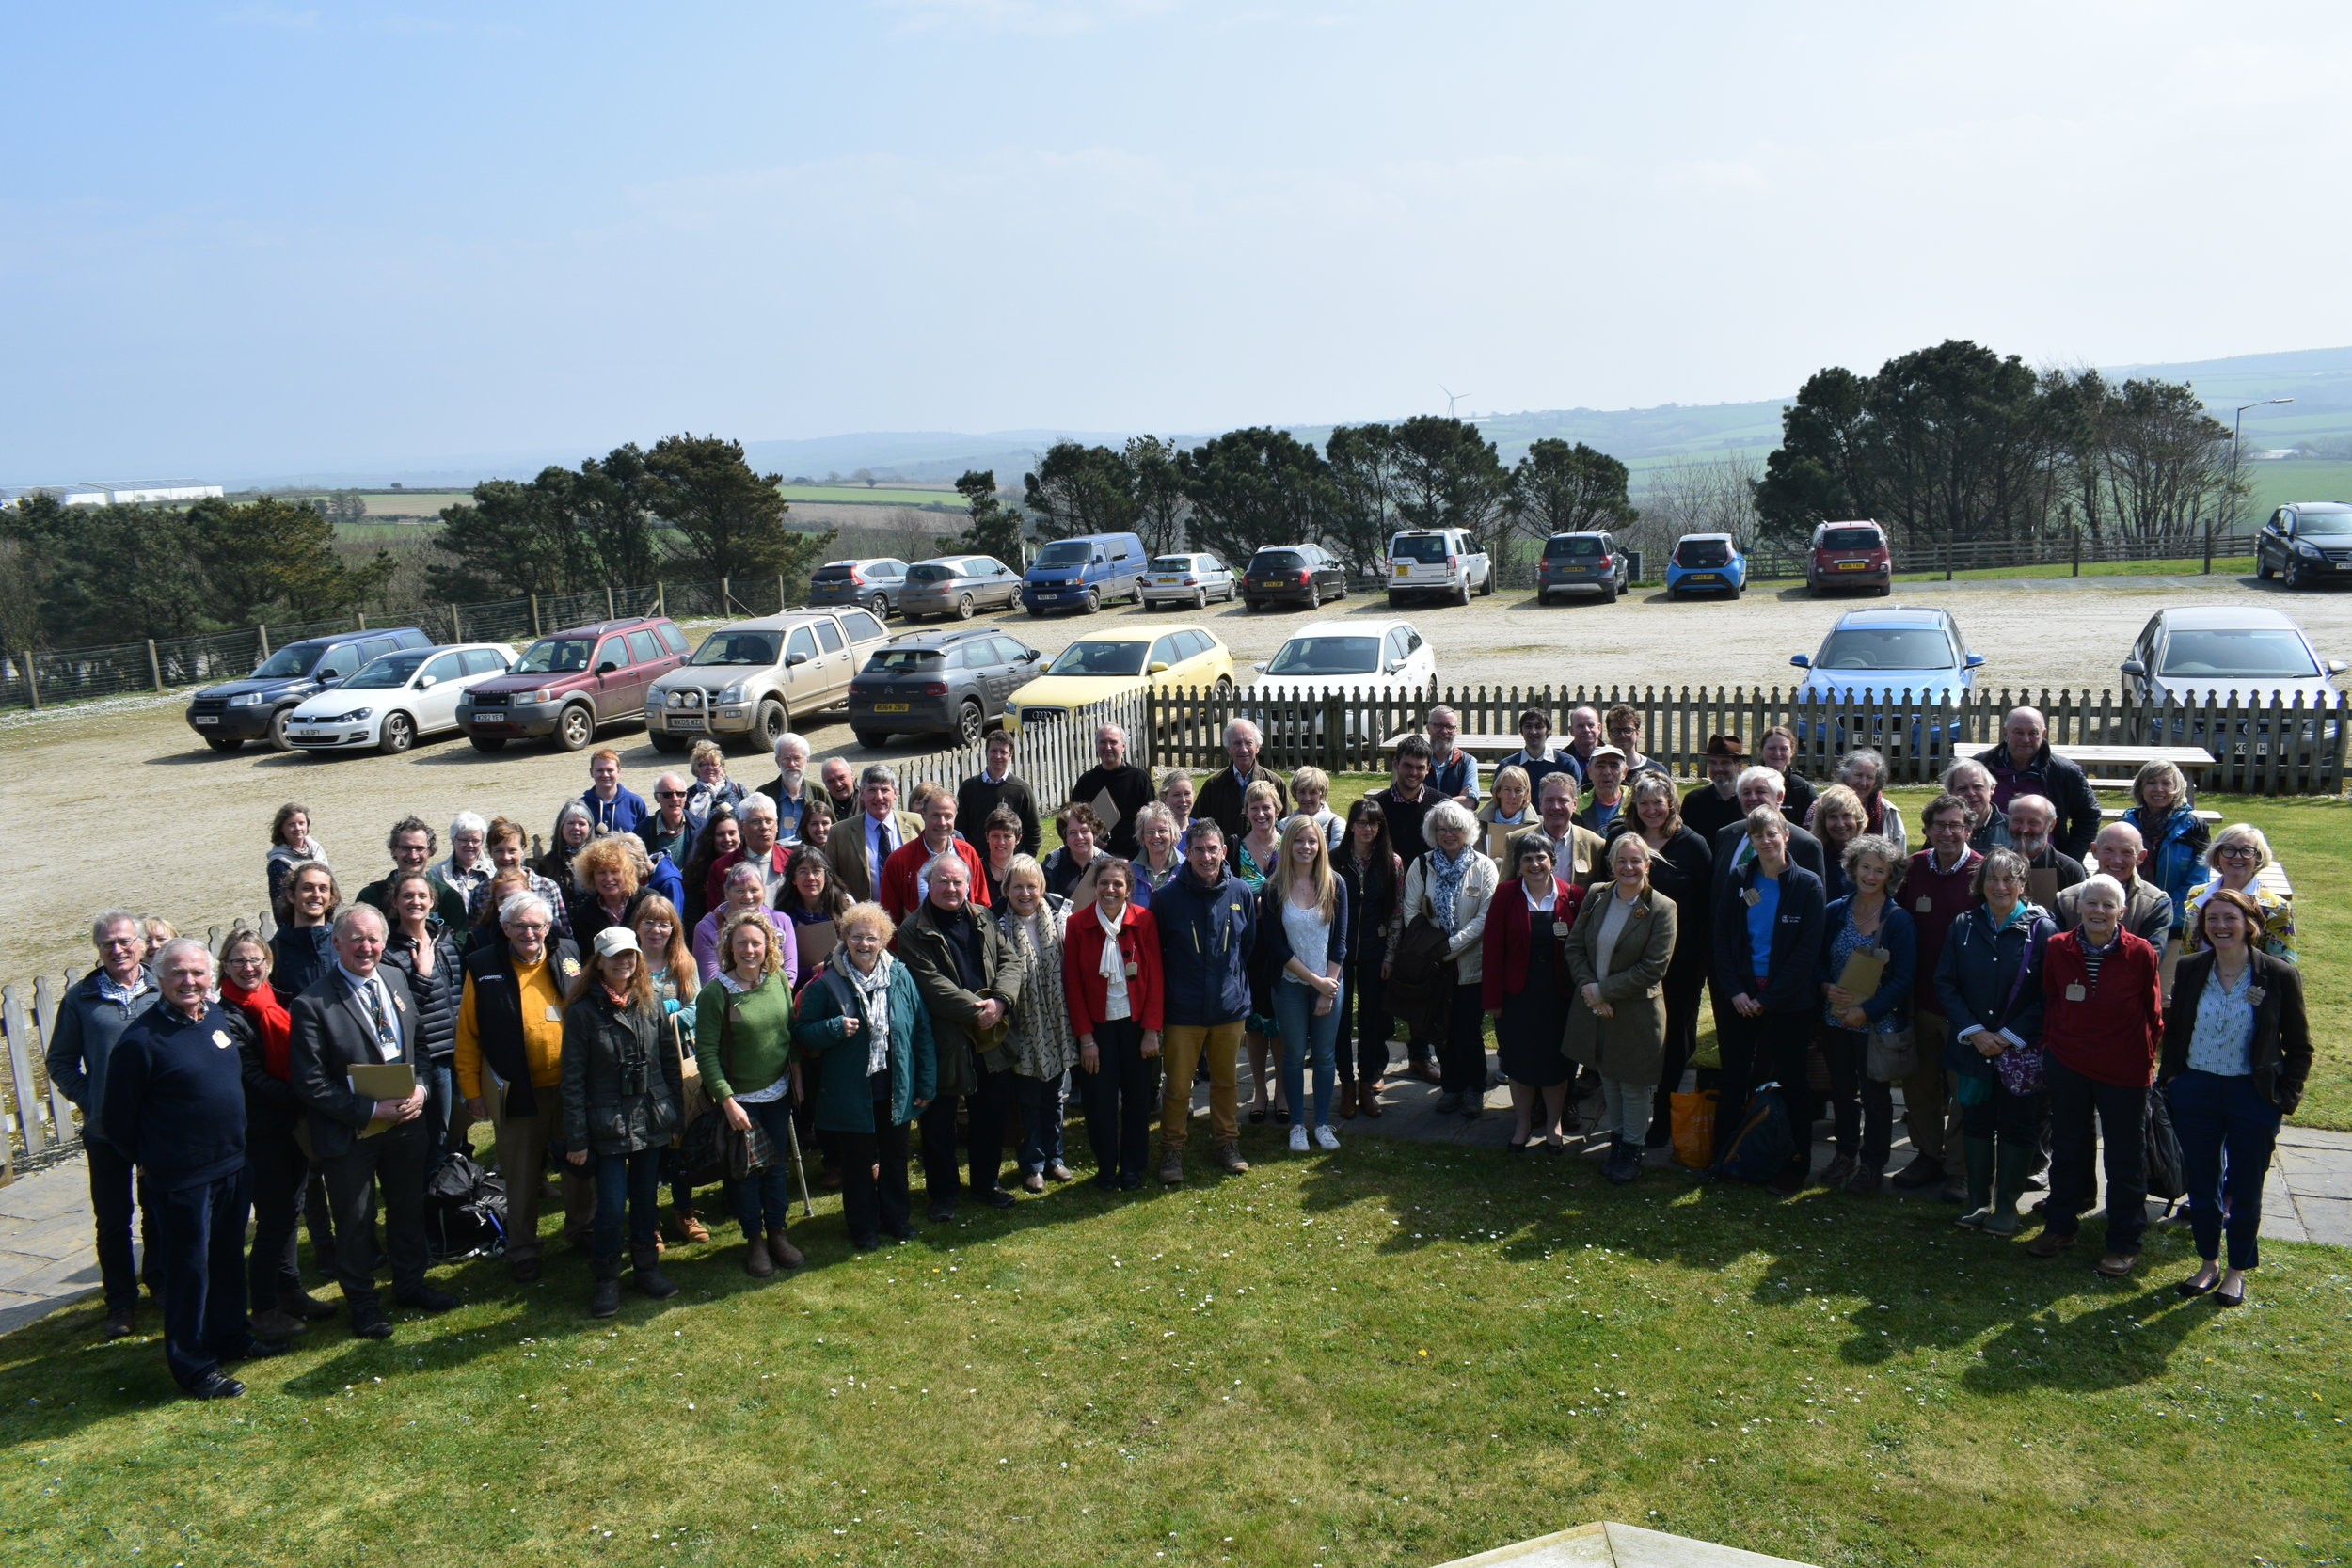 The delegates assembled for the photo call after lunch